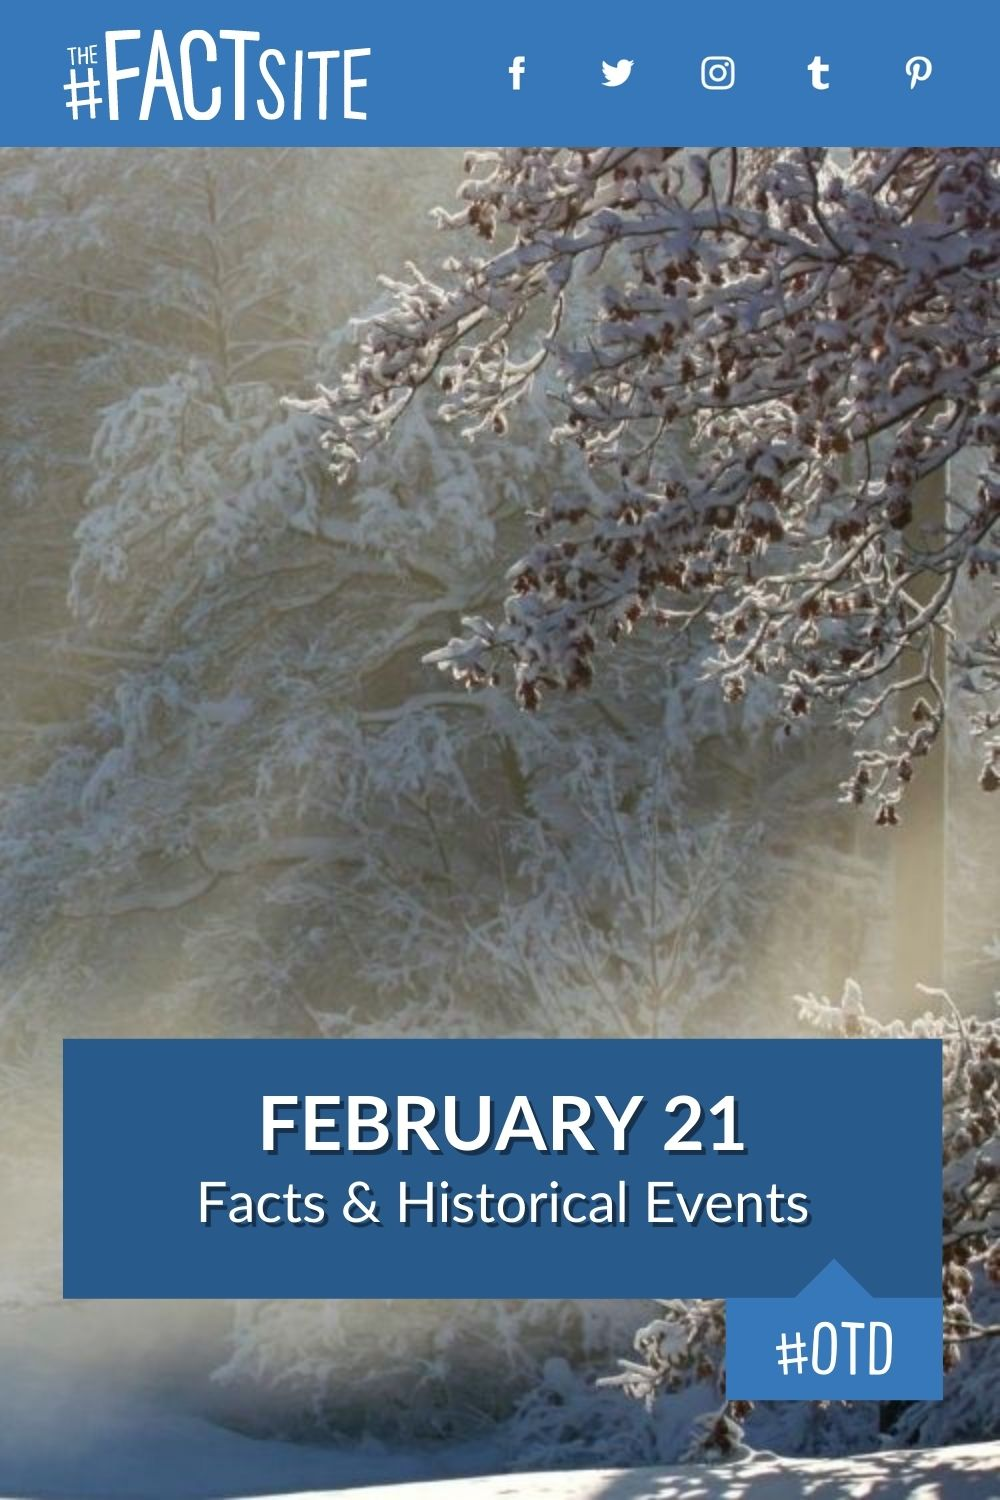 Facts & Historic Events That Happened on February 21